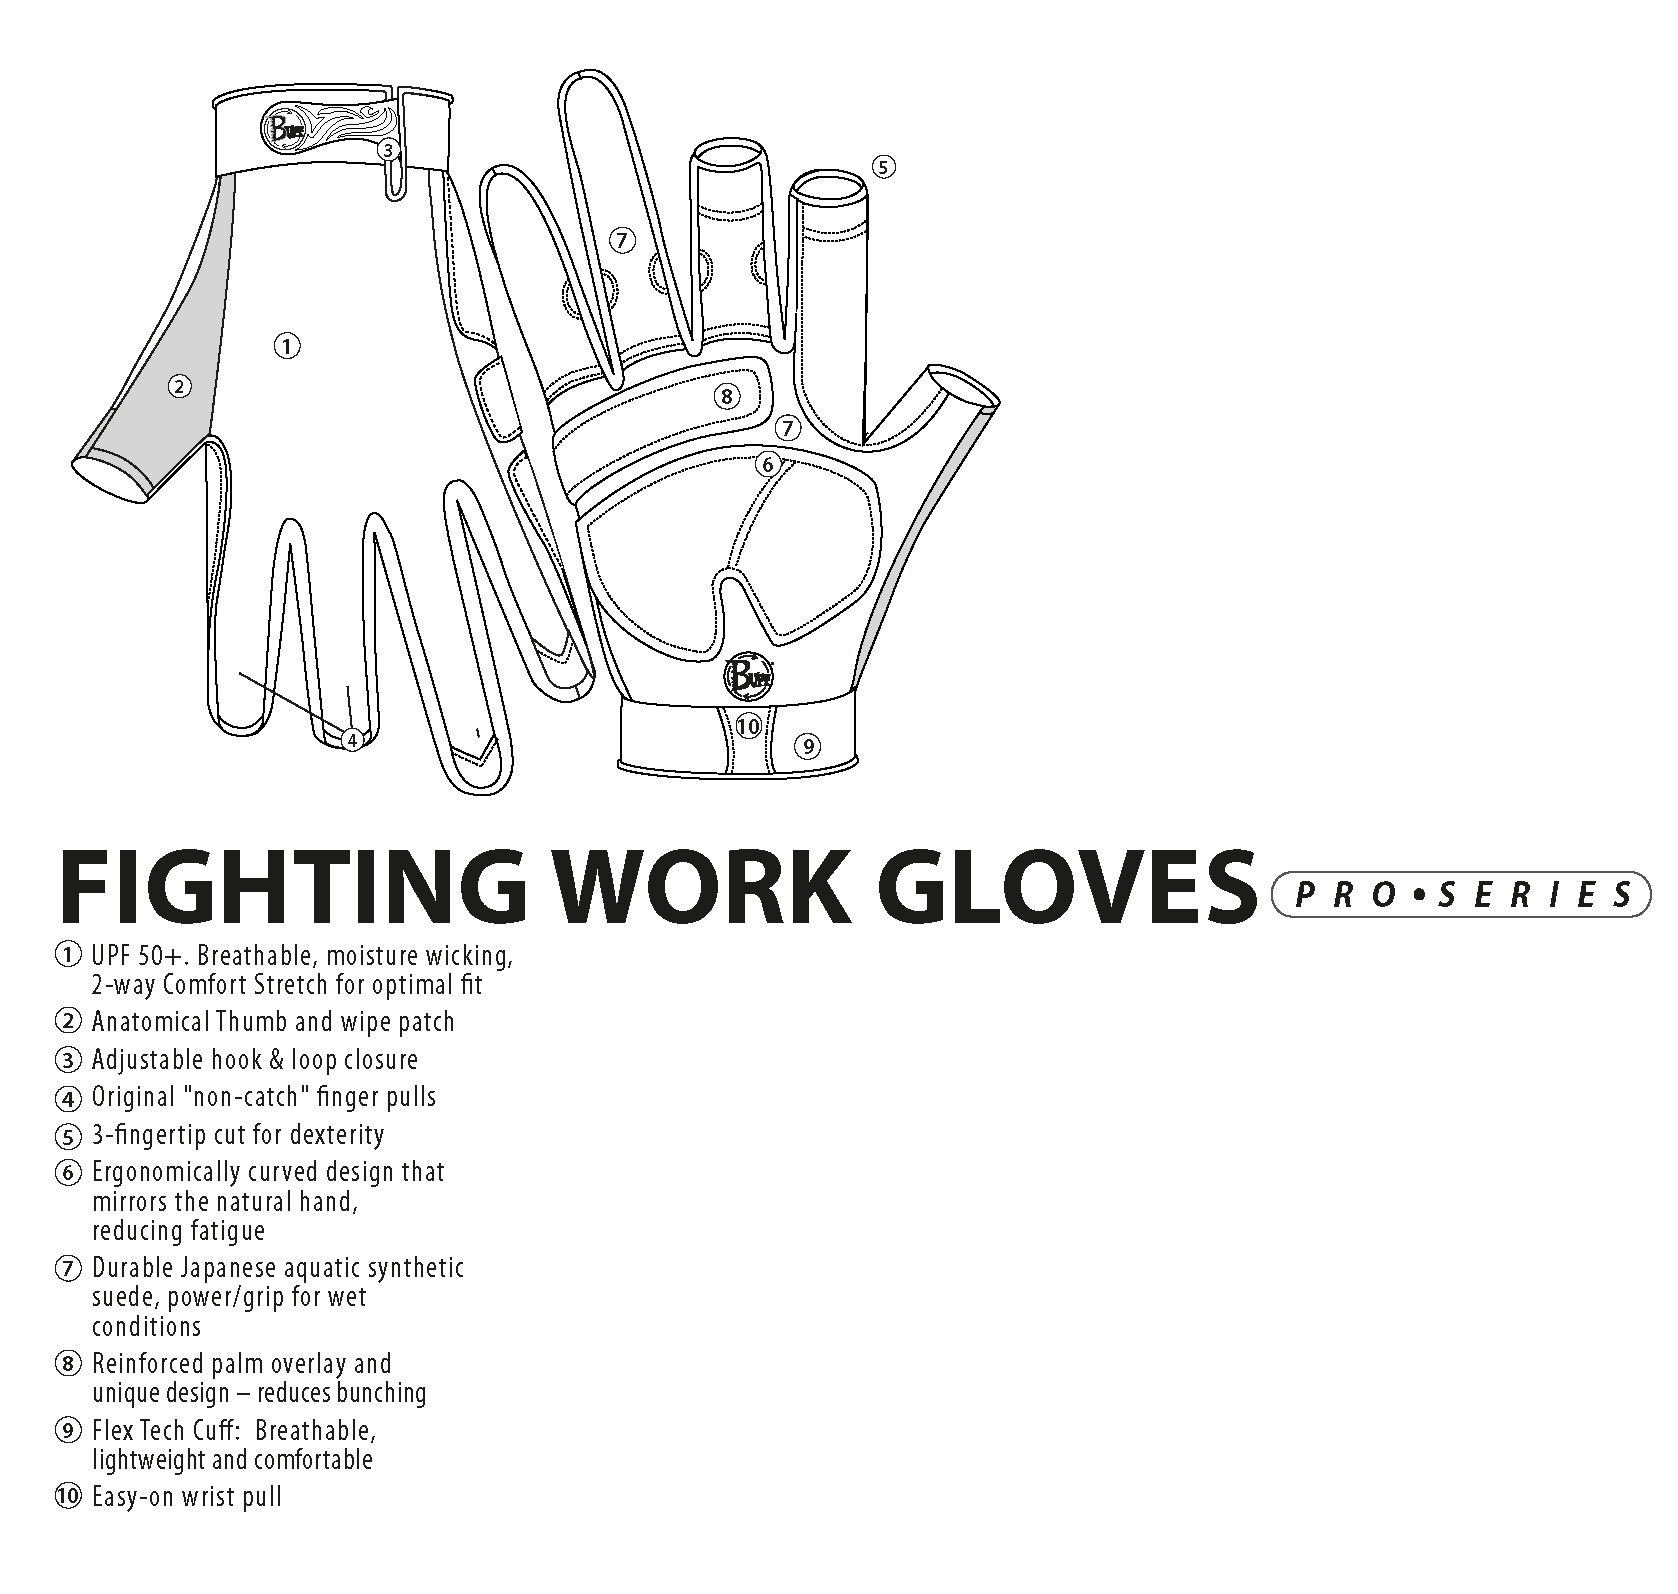 Fly Fishing Gloves Buff Original Fighting & Work Pro Series - Specifications